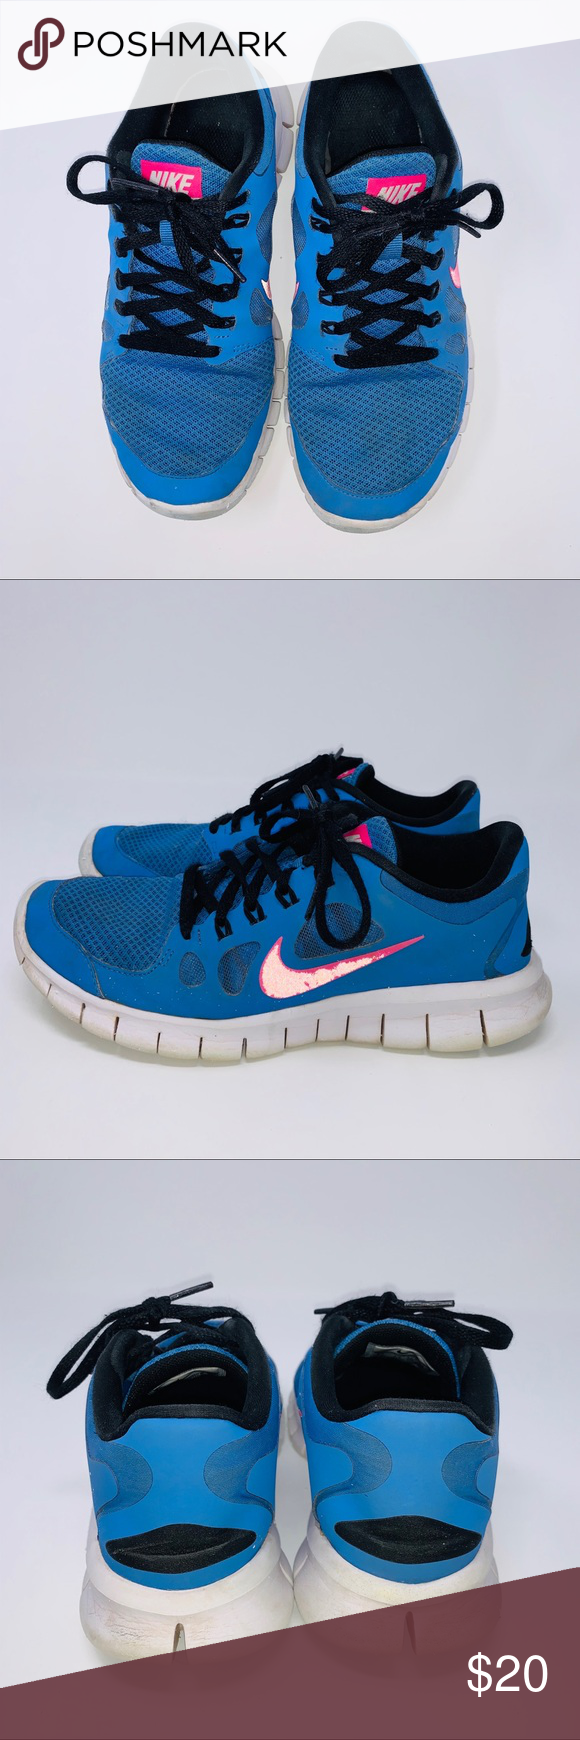 huge discount 12f02 ae908 Girls Nike Free 5.0 Blue and Pink Sneakers Size 6Y Girls ...